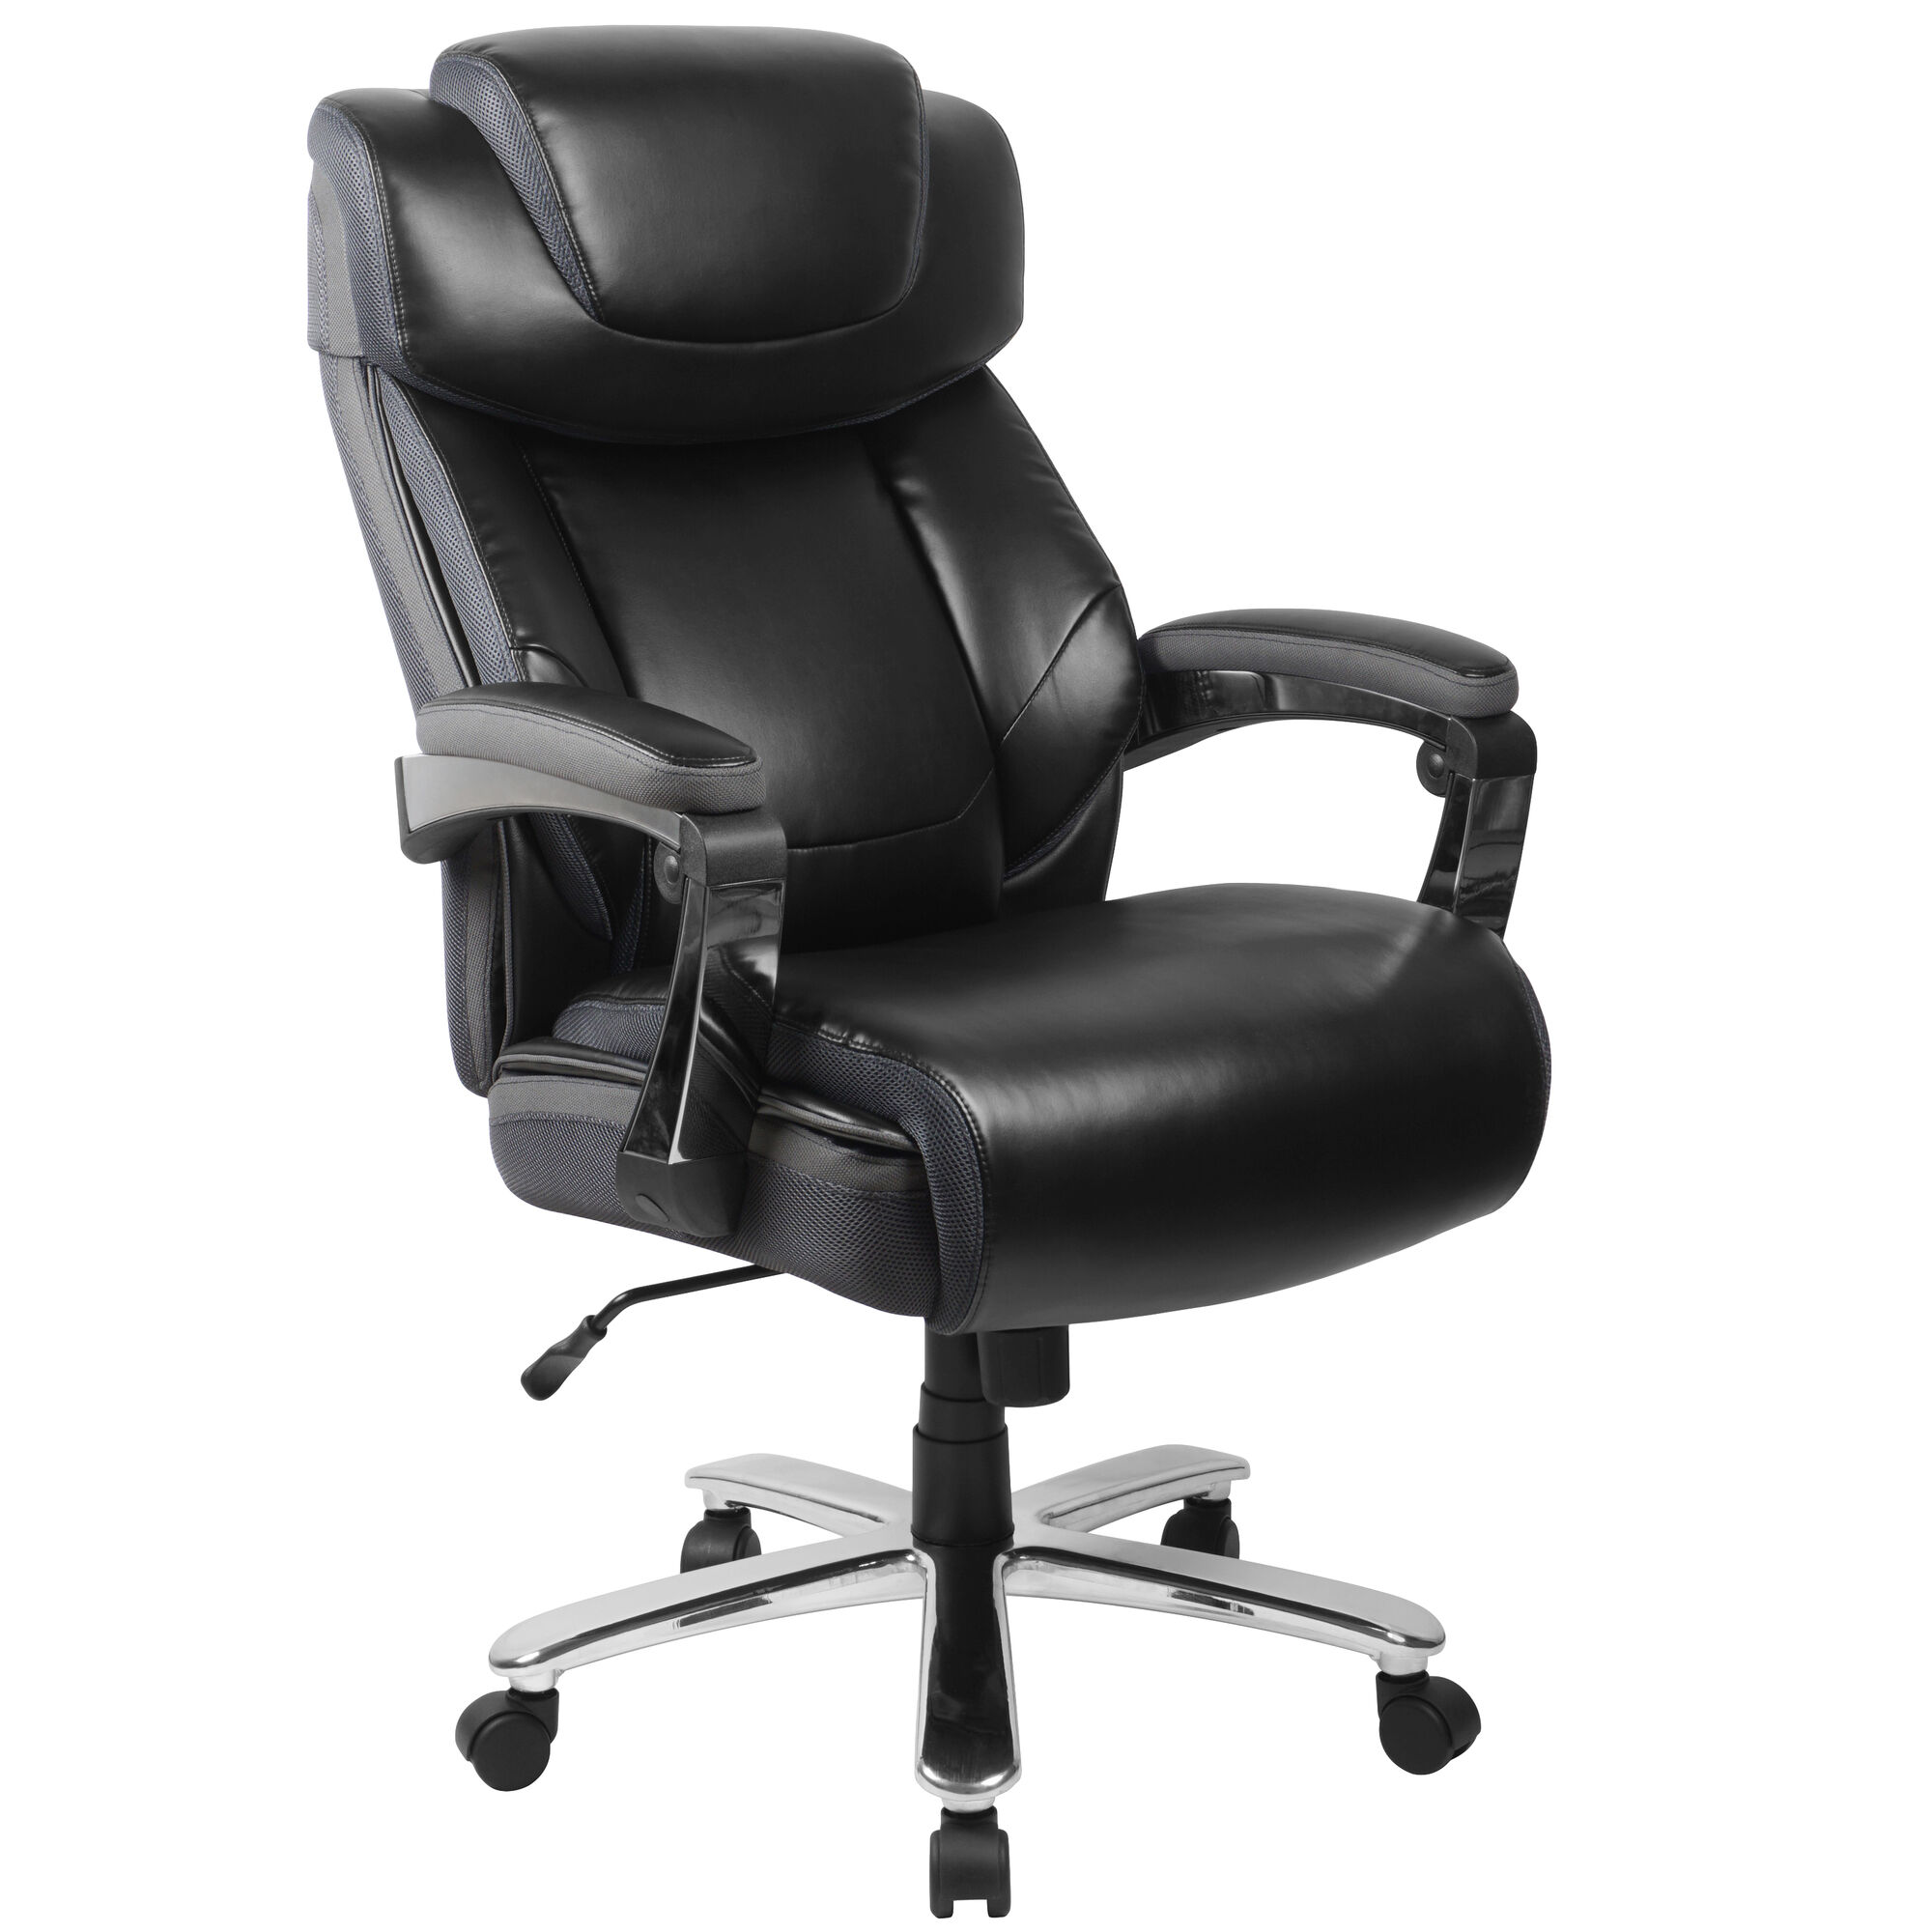 Peachy Hercules Series Big Tall 500 Lb Rated Black Leather Executive Swivel Ergonomic Office Chair With Adjustable Headrest Download Free Architecture Designs Terchretrmadebymaigaardcom